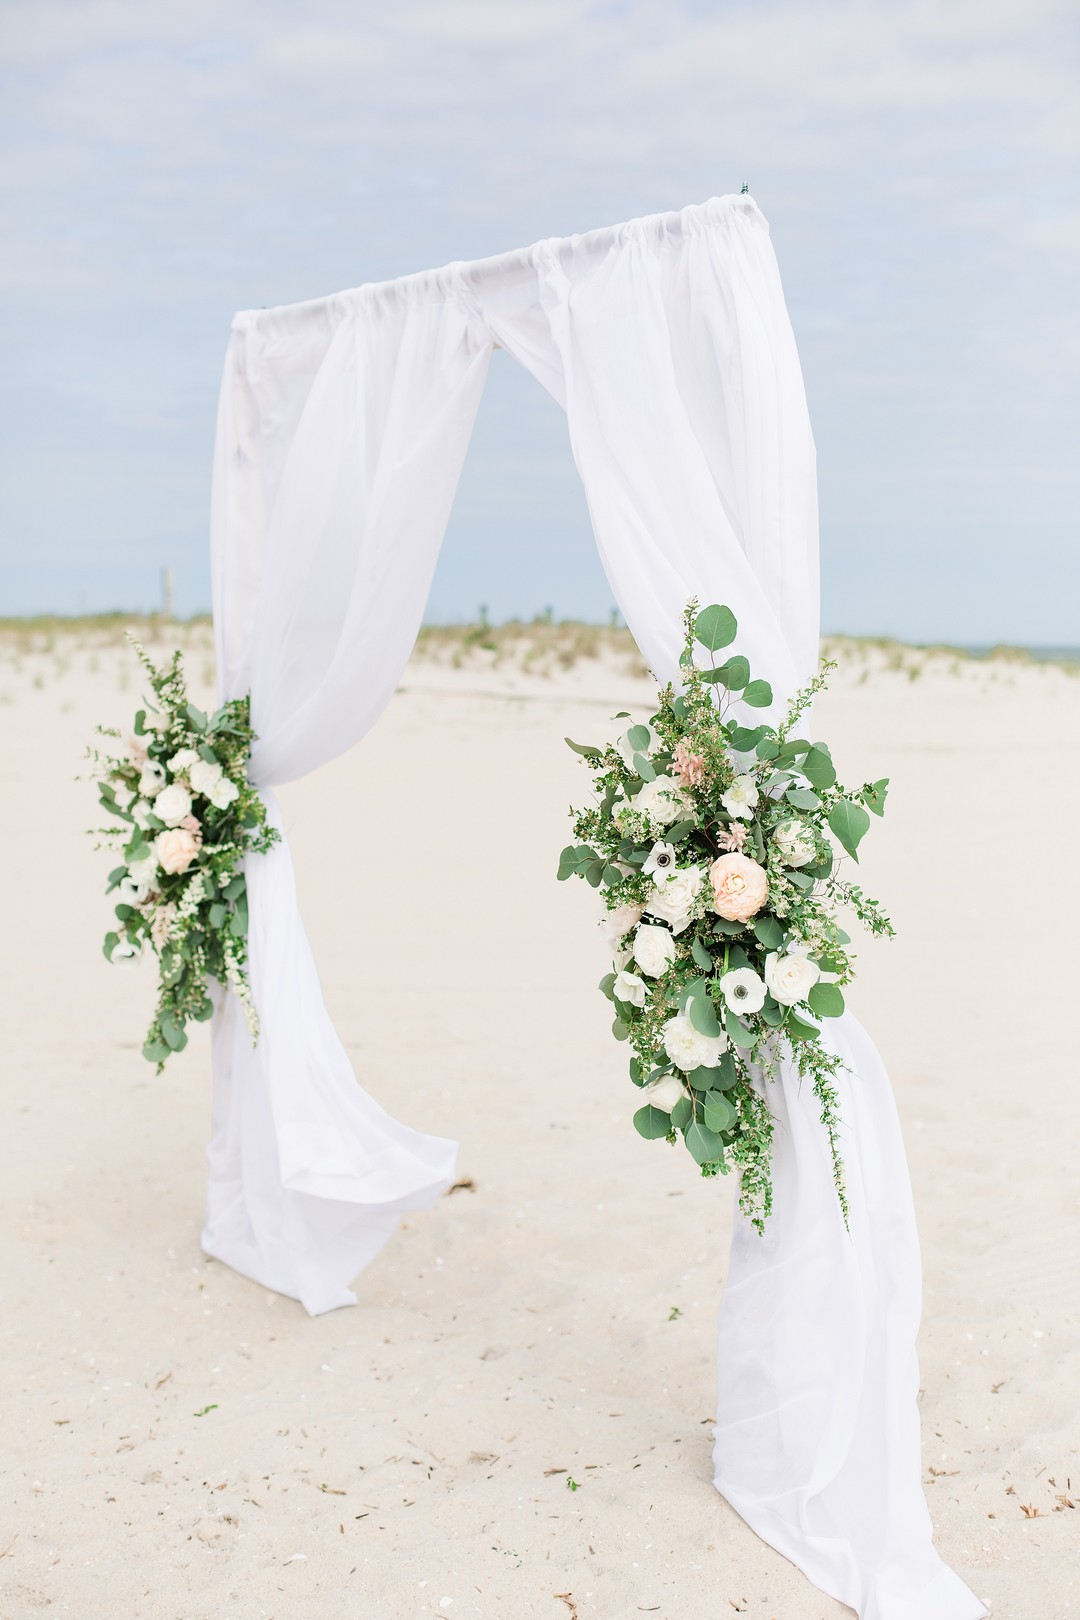 ceremony arbor decorated with white anemones